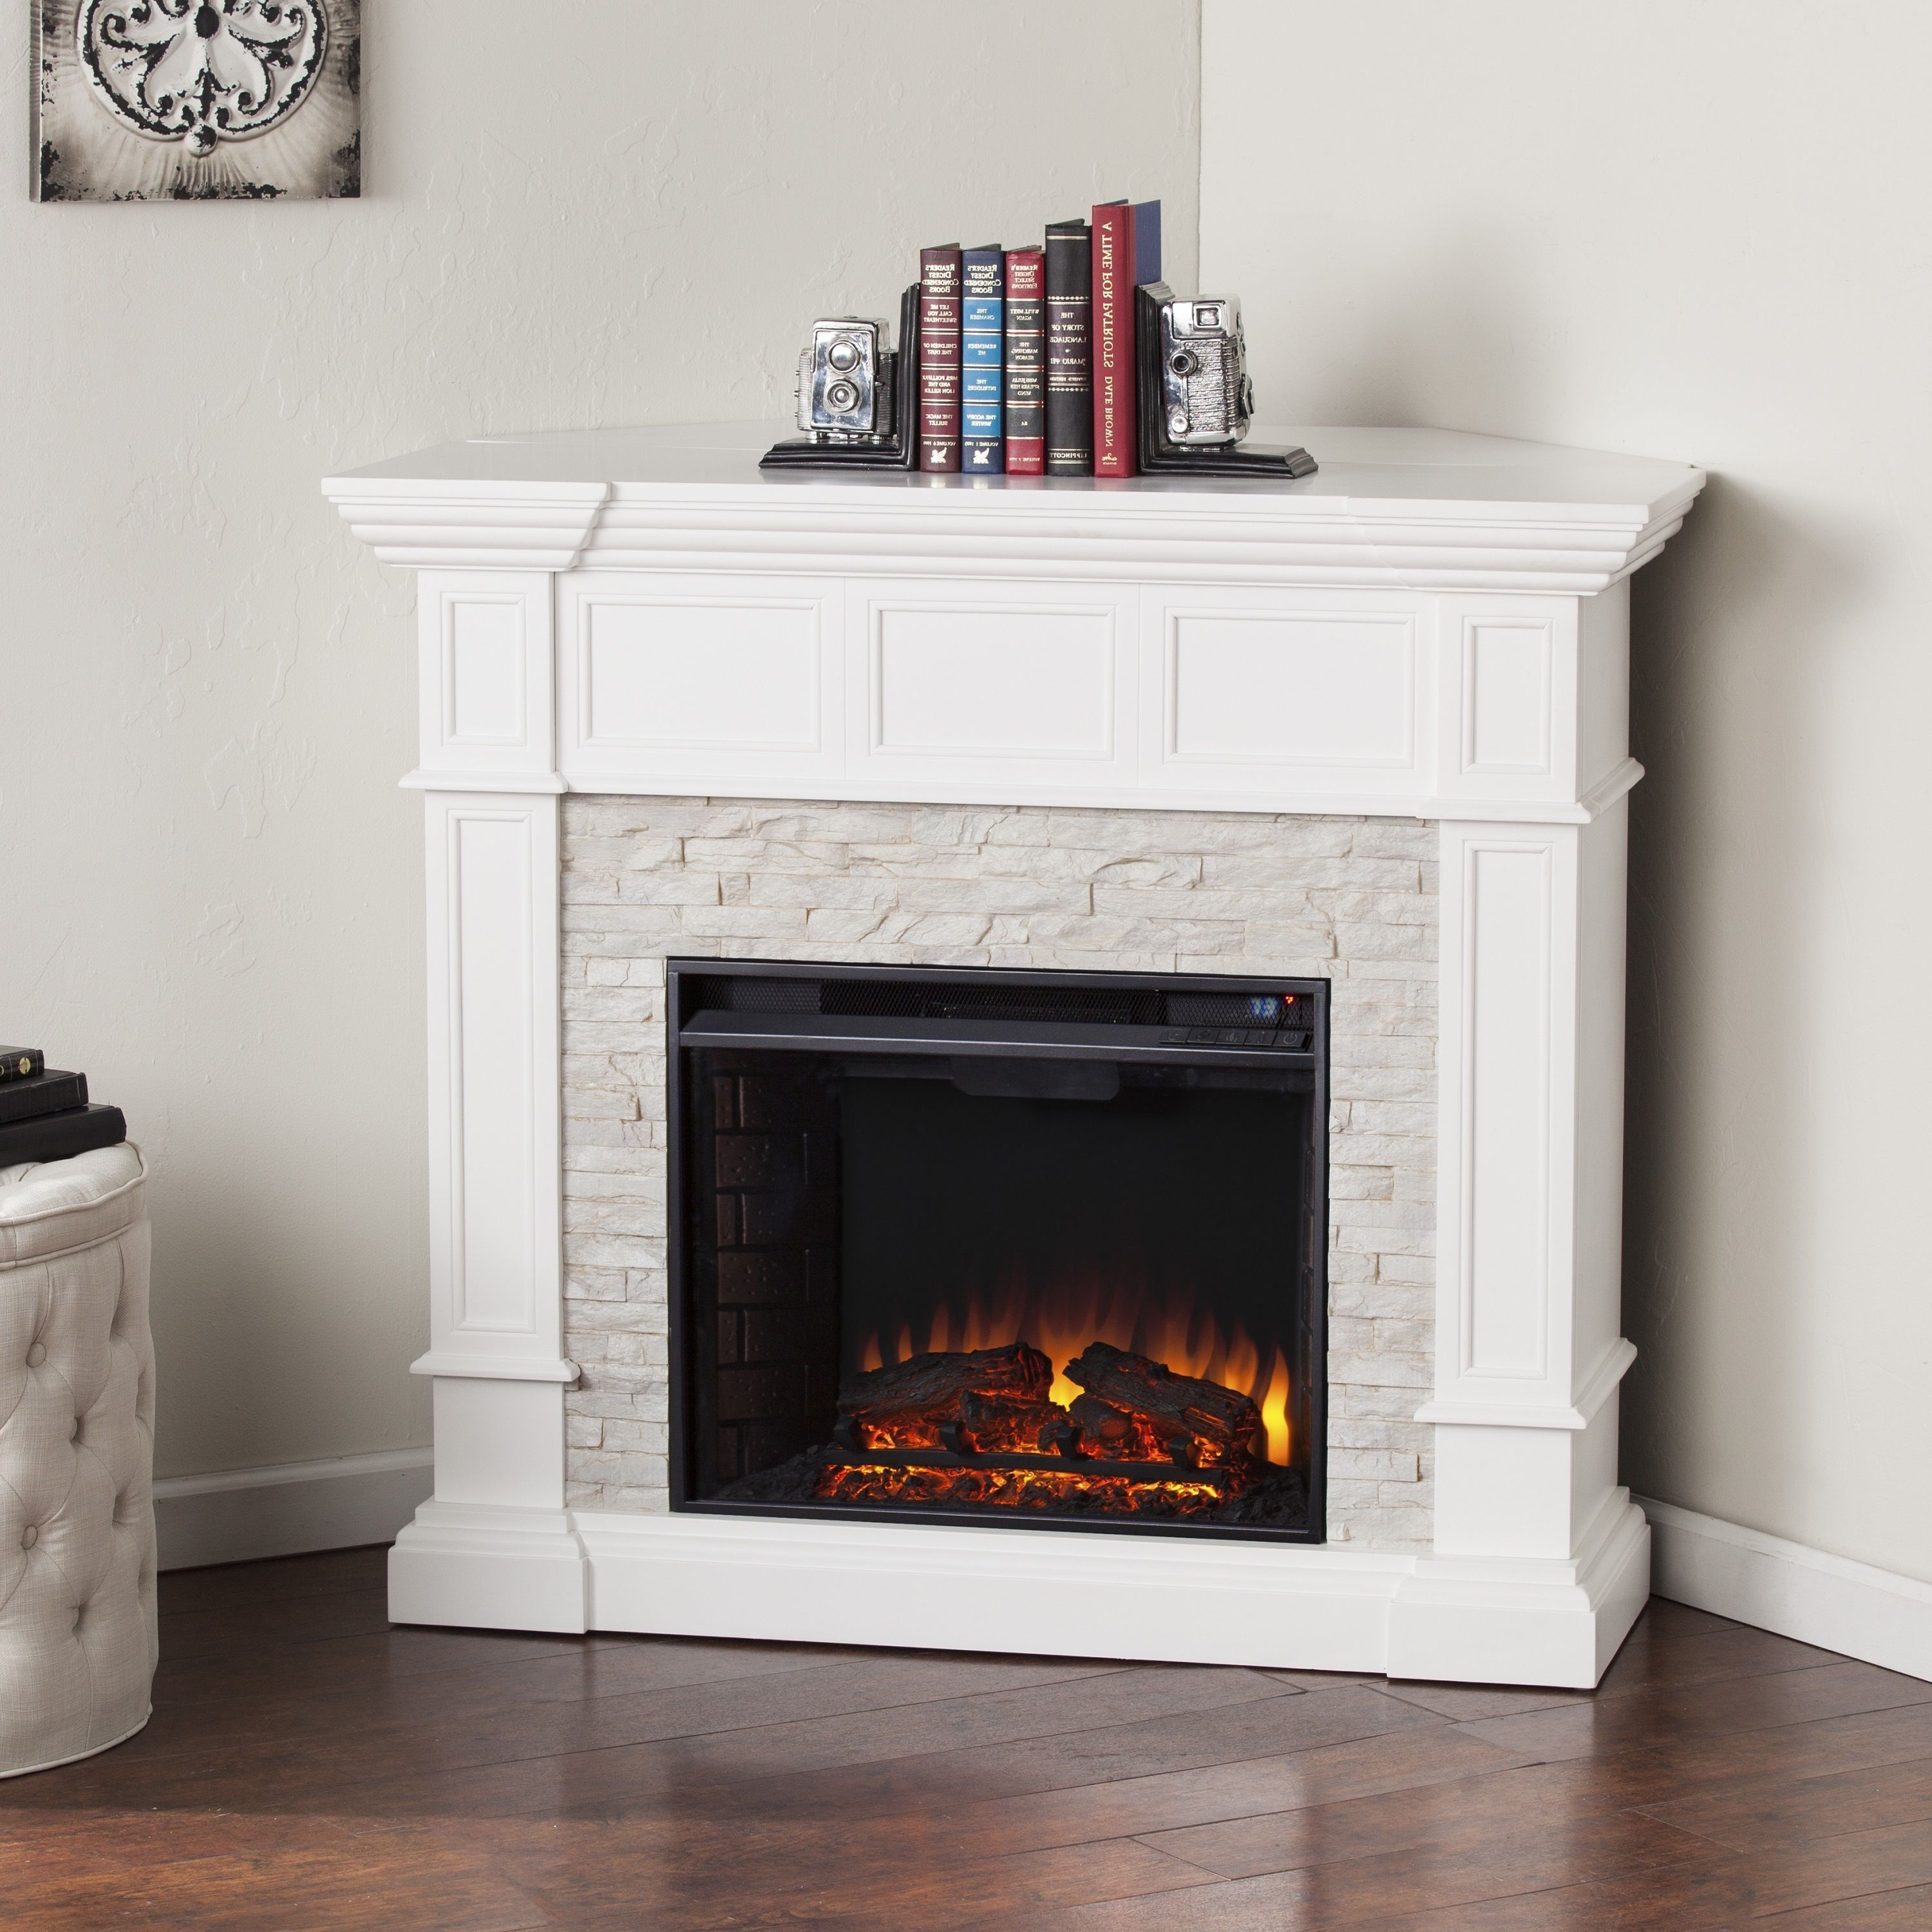 Fireplace Ideas without Fire Elegant 33 Modern and Traditional Corner Fireplace Ideas Remodel